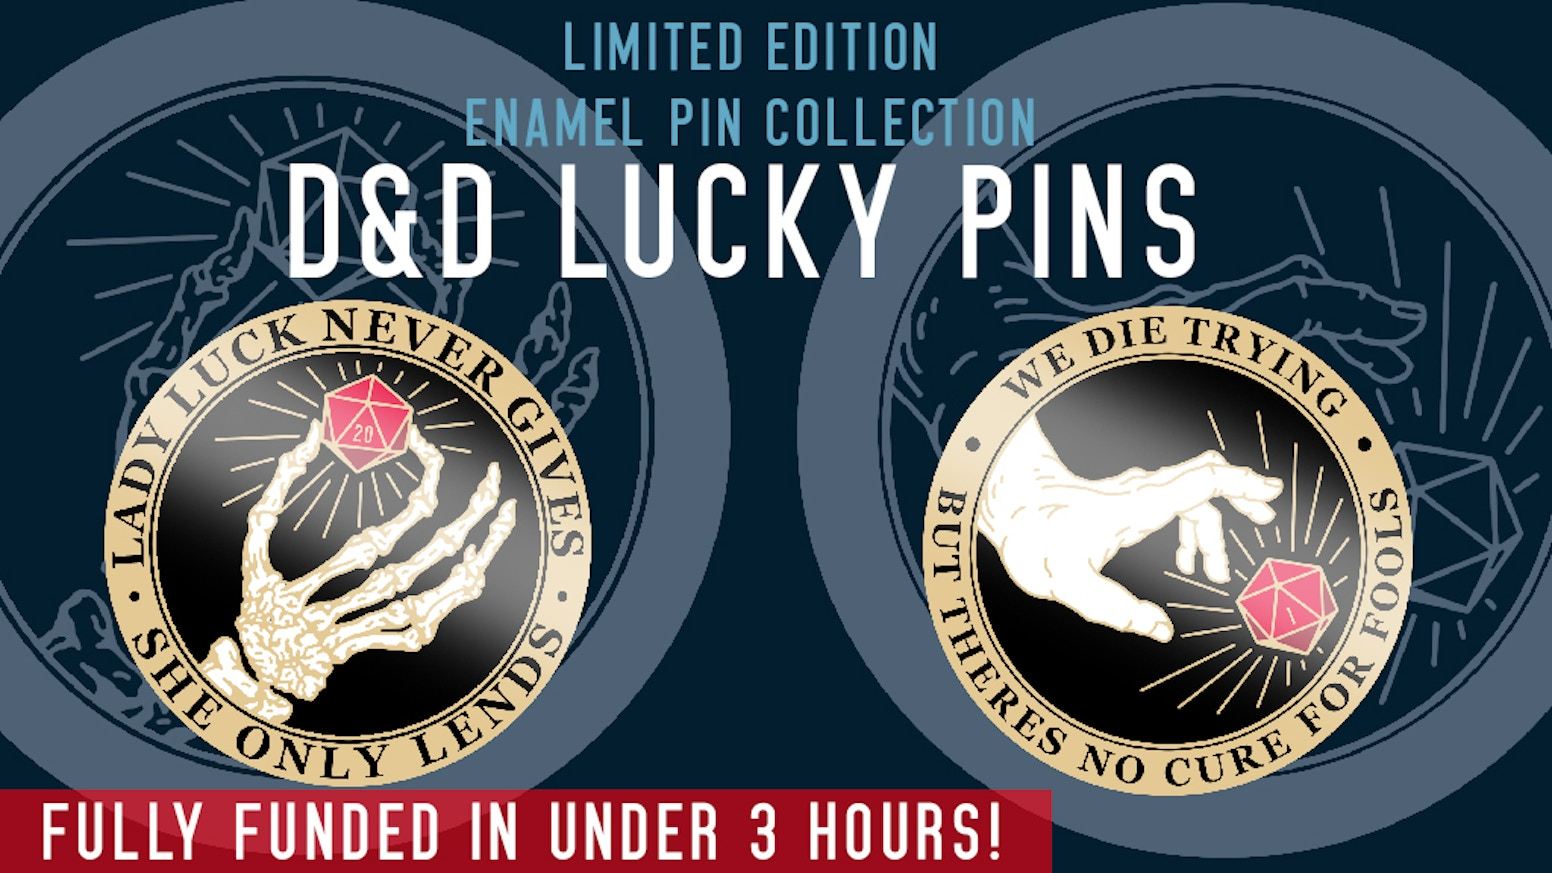 Limited edition pin set the best and worst of lady luck.